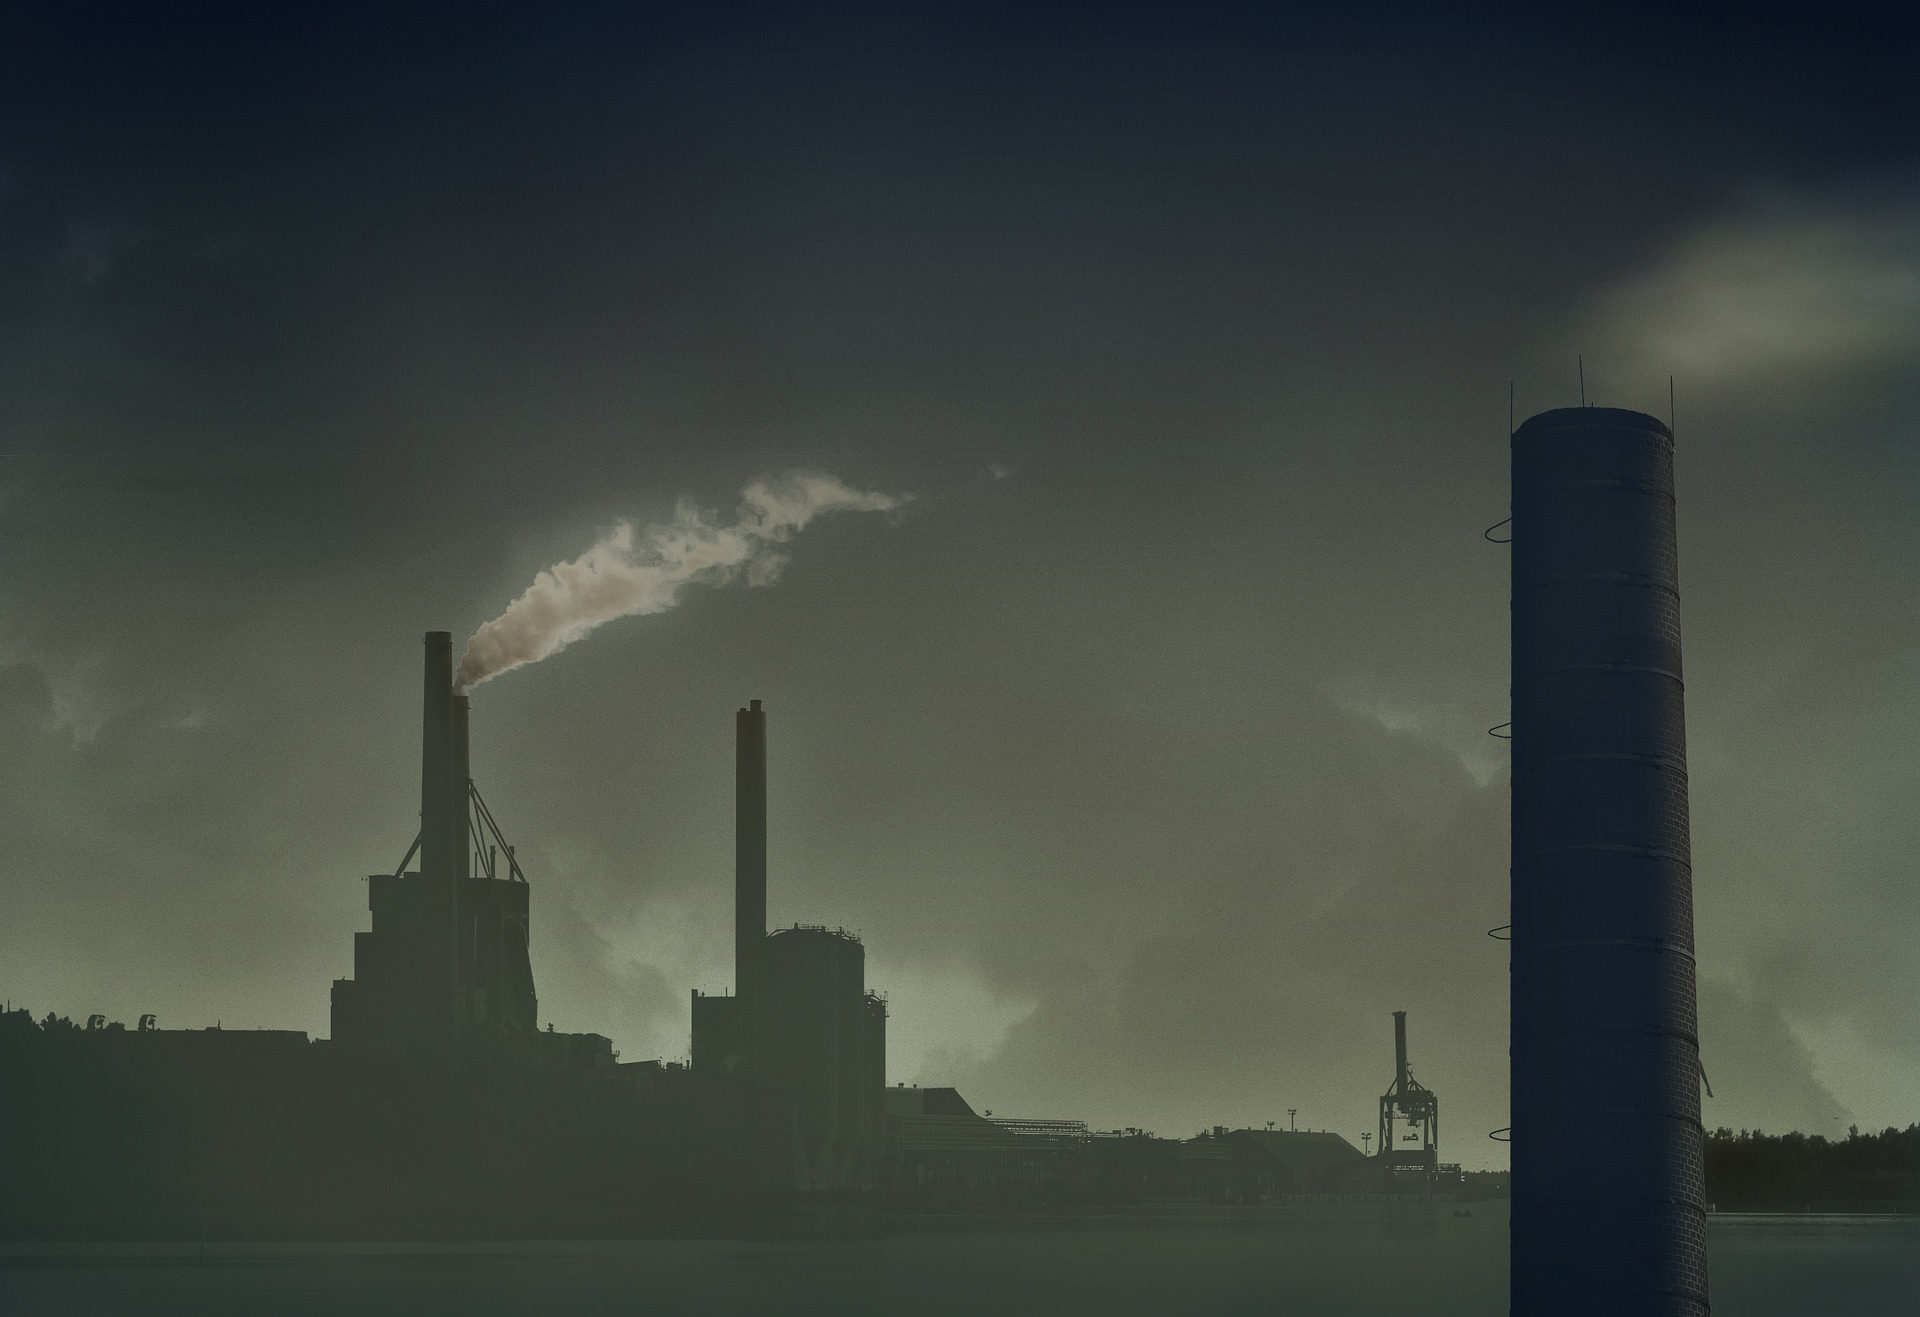 Possible Things To Happen If We Don't Stop Air Pollution